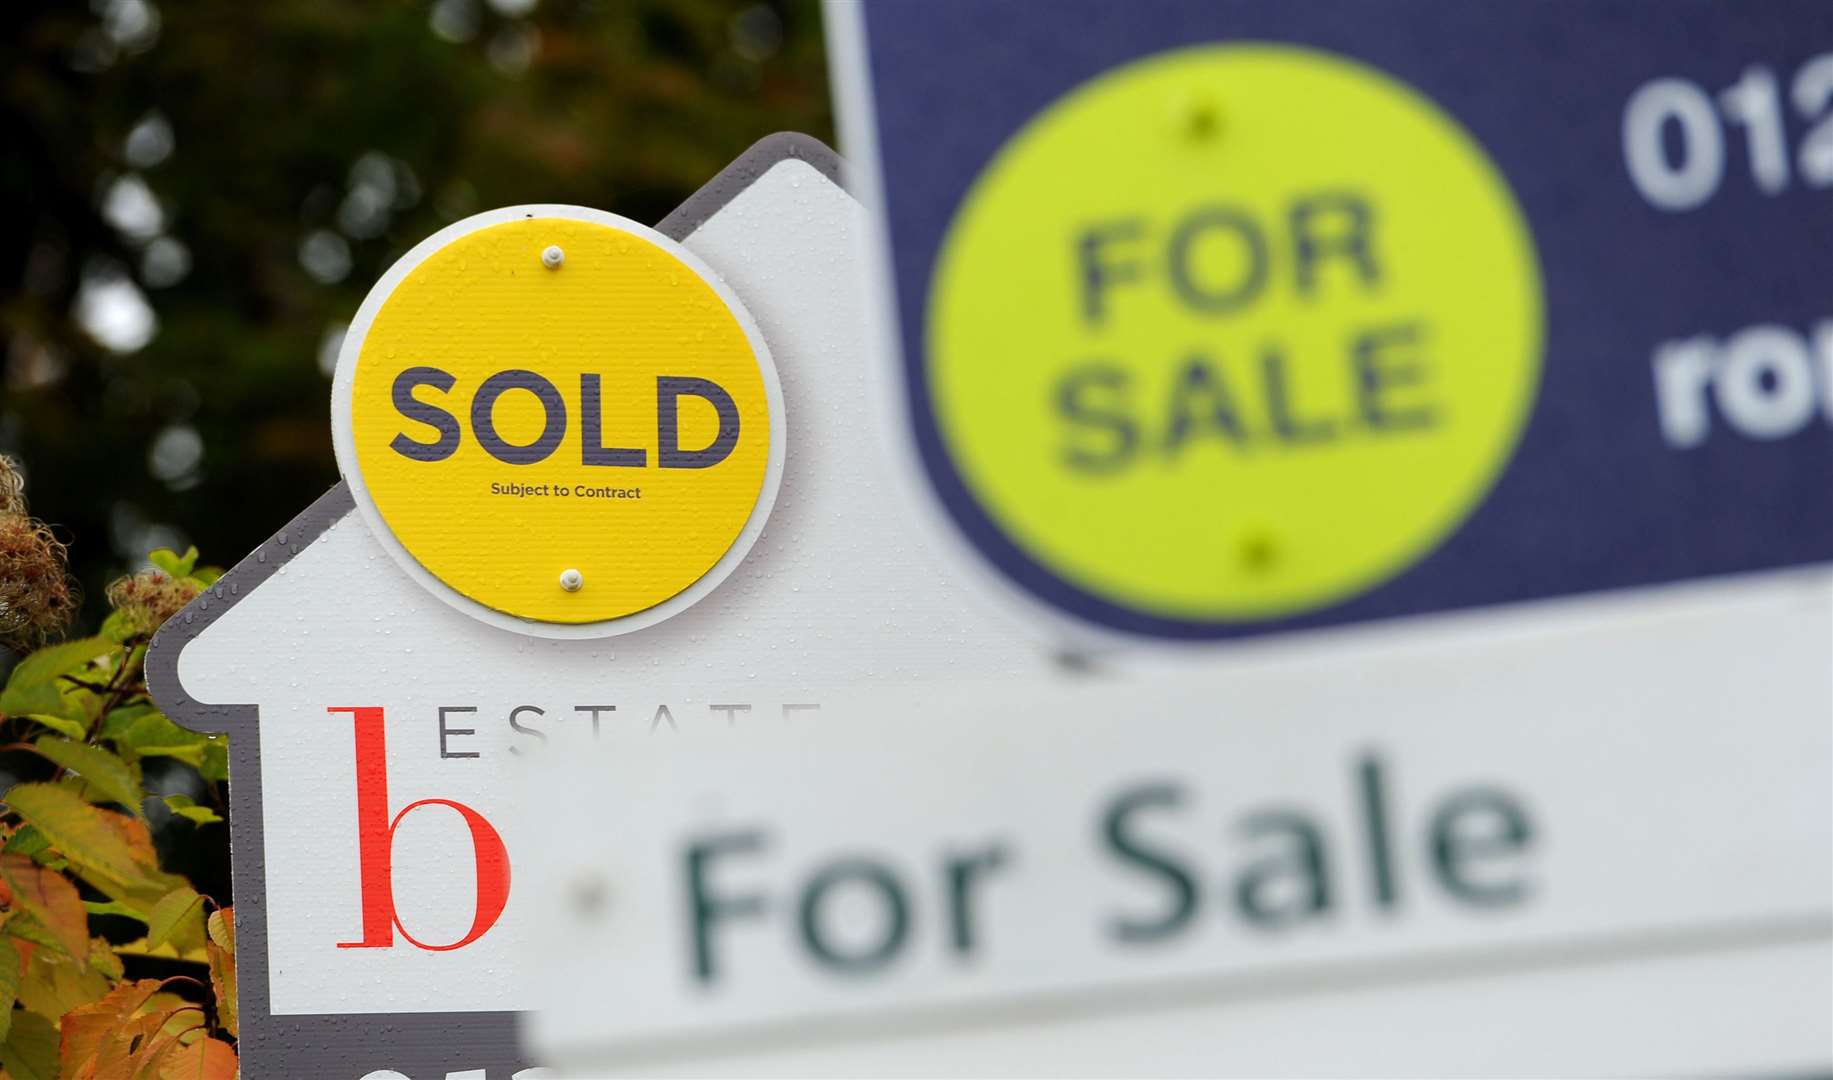 House prices have been rocketing in a sought-after Kent destination